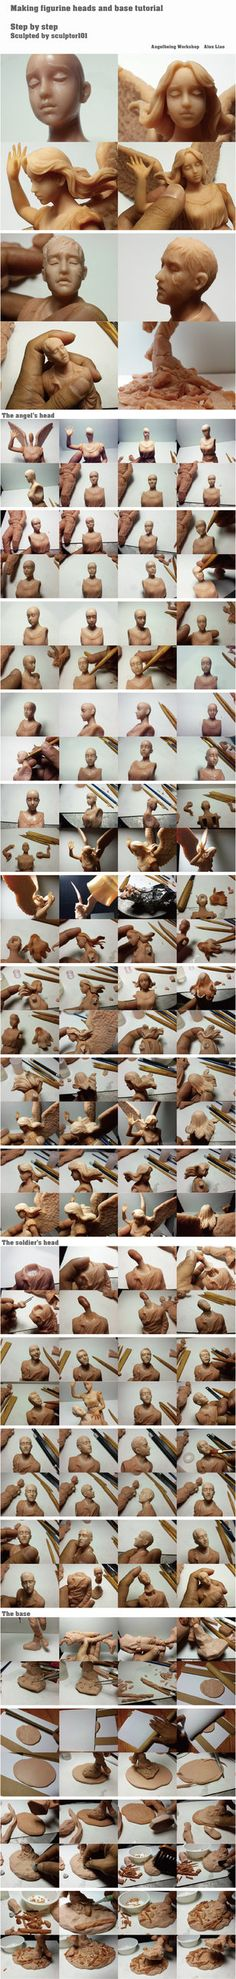 Figurine WIP\ tutorial part 6 heads + base final by sculptor101 on DeviantArt